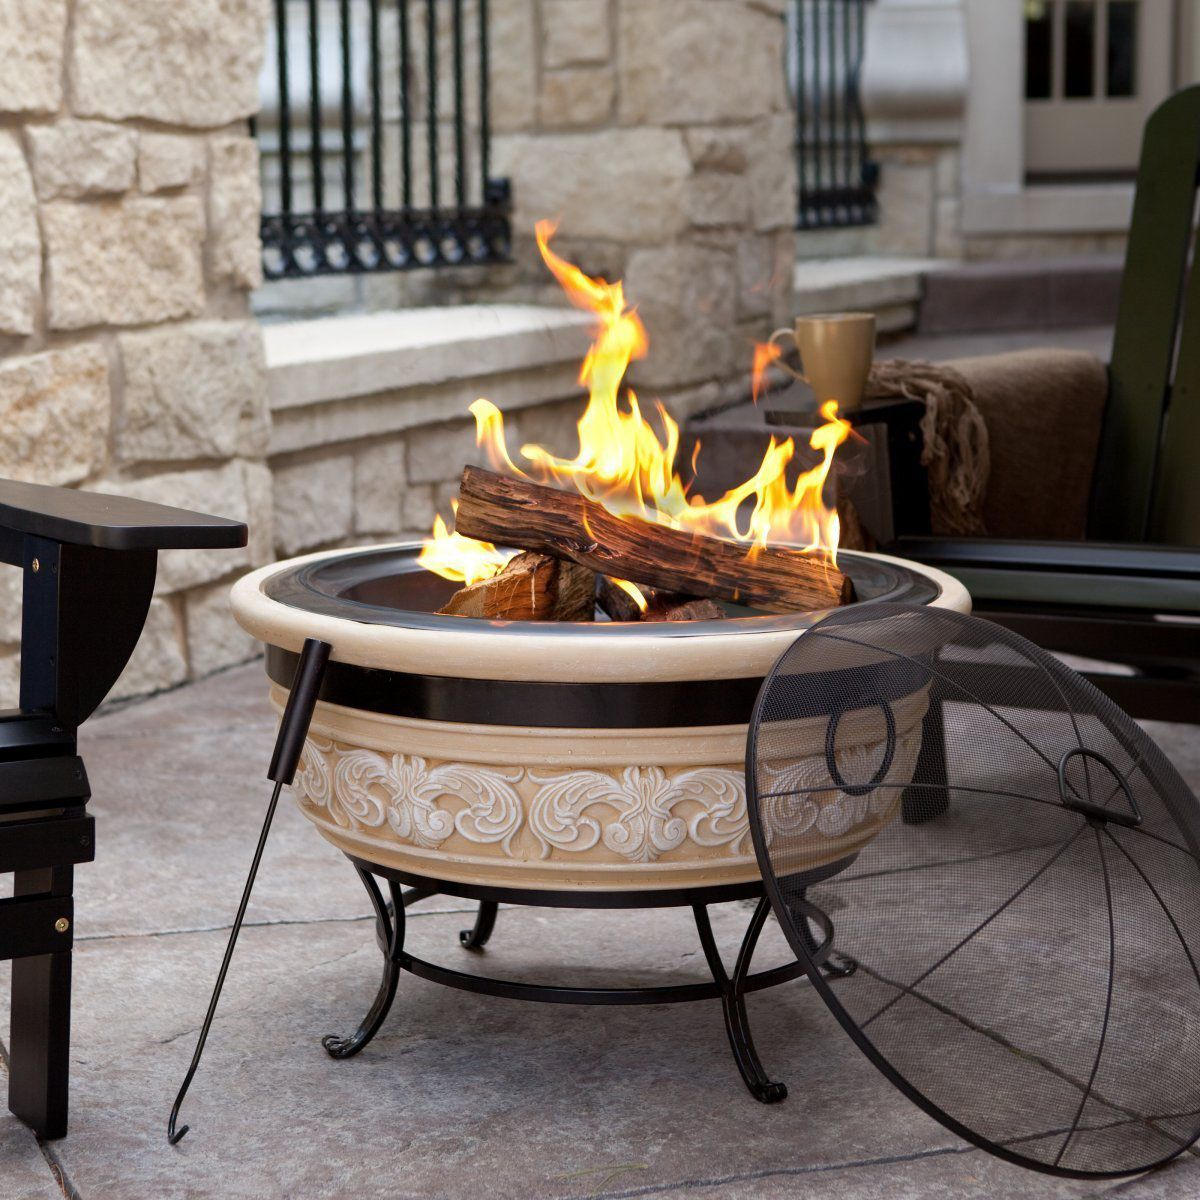 Portable Fire Pit For The Backyard   6 Top Picks For A Relaxing Backyard